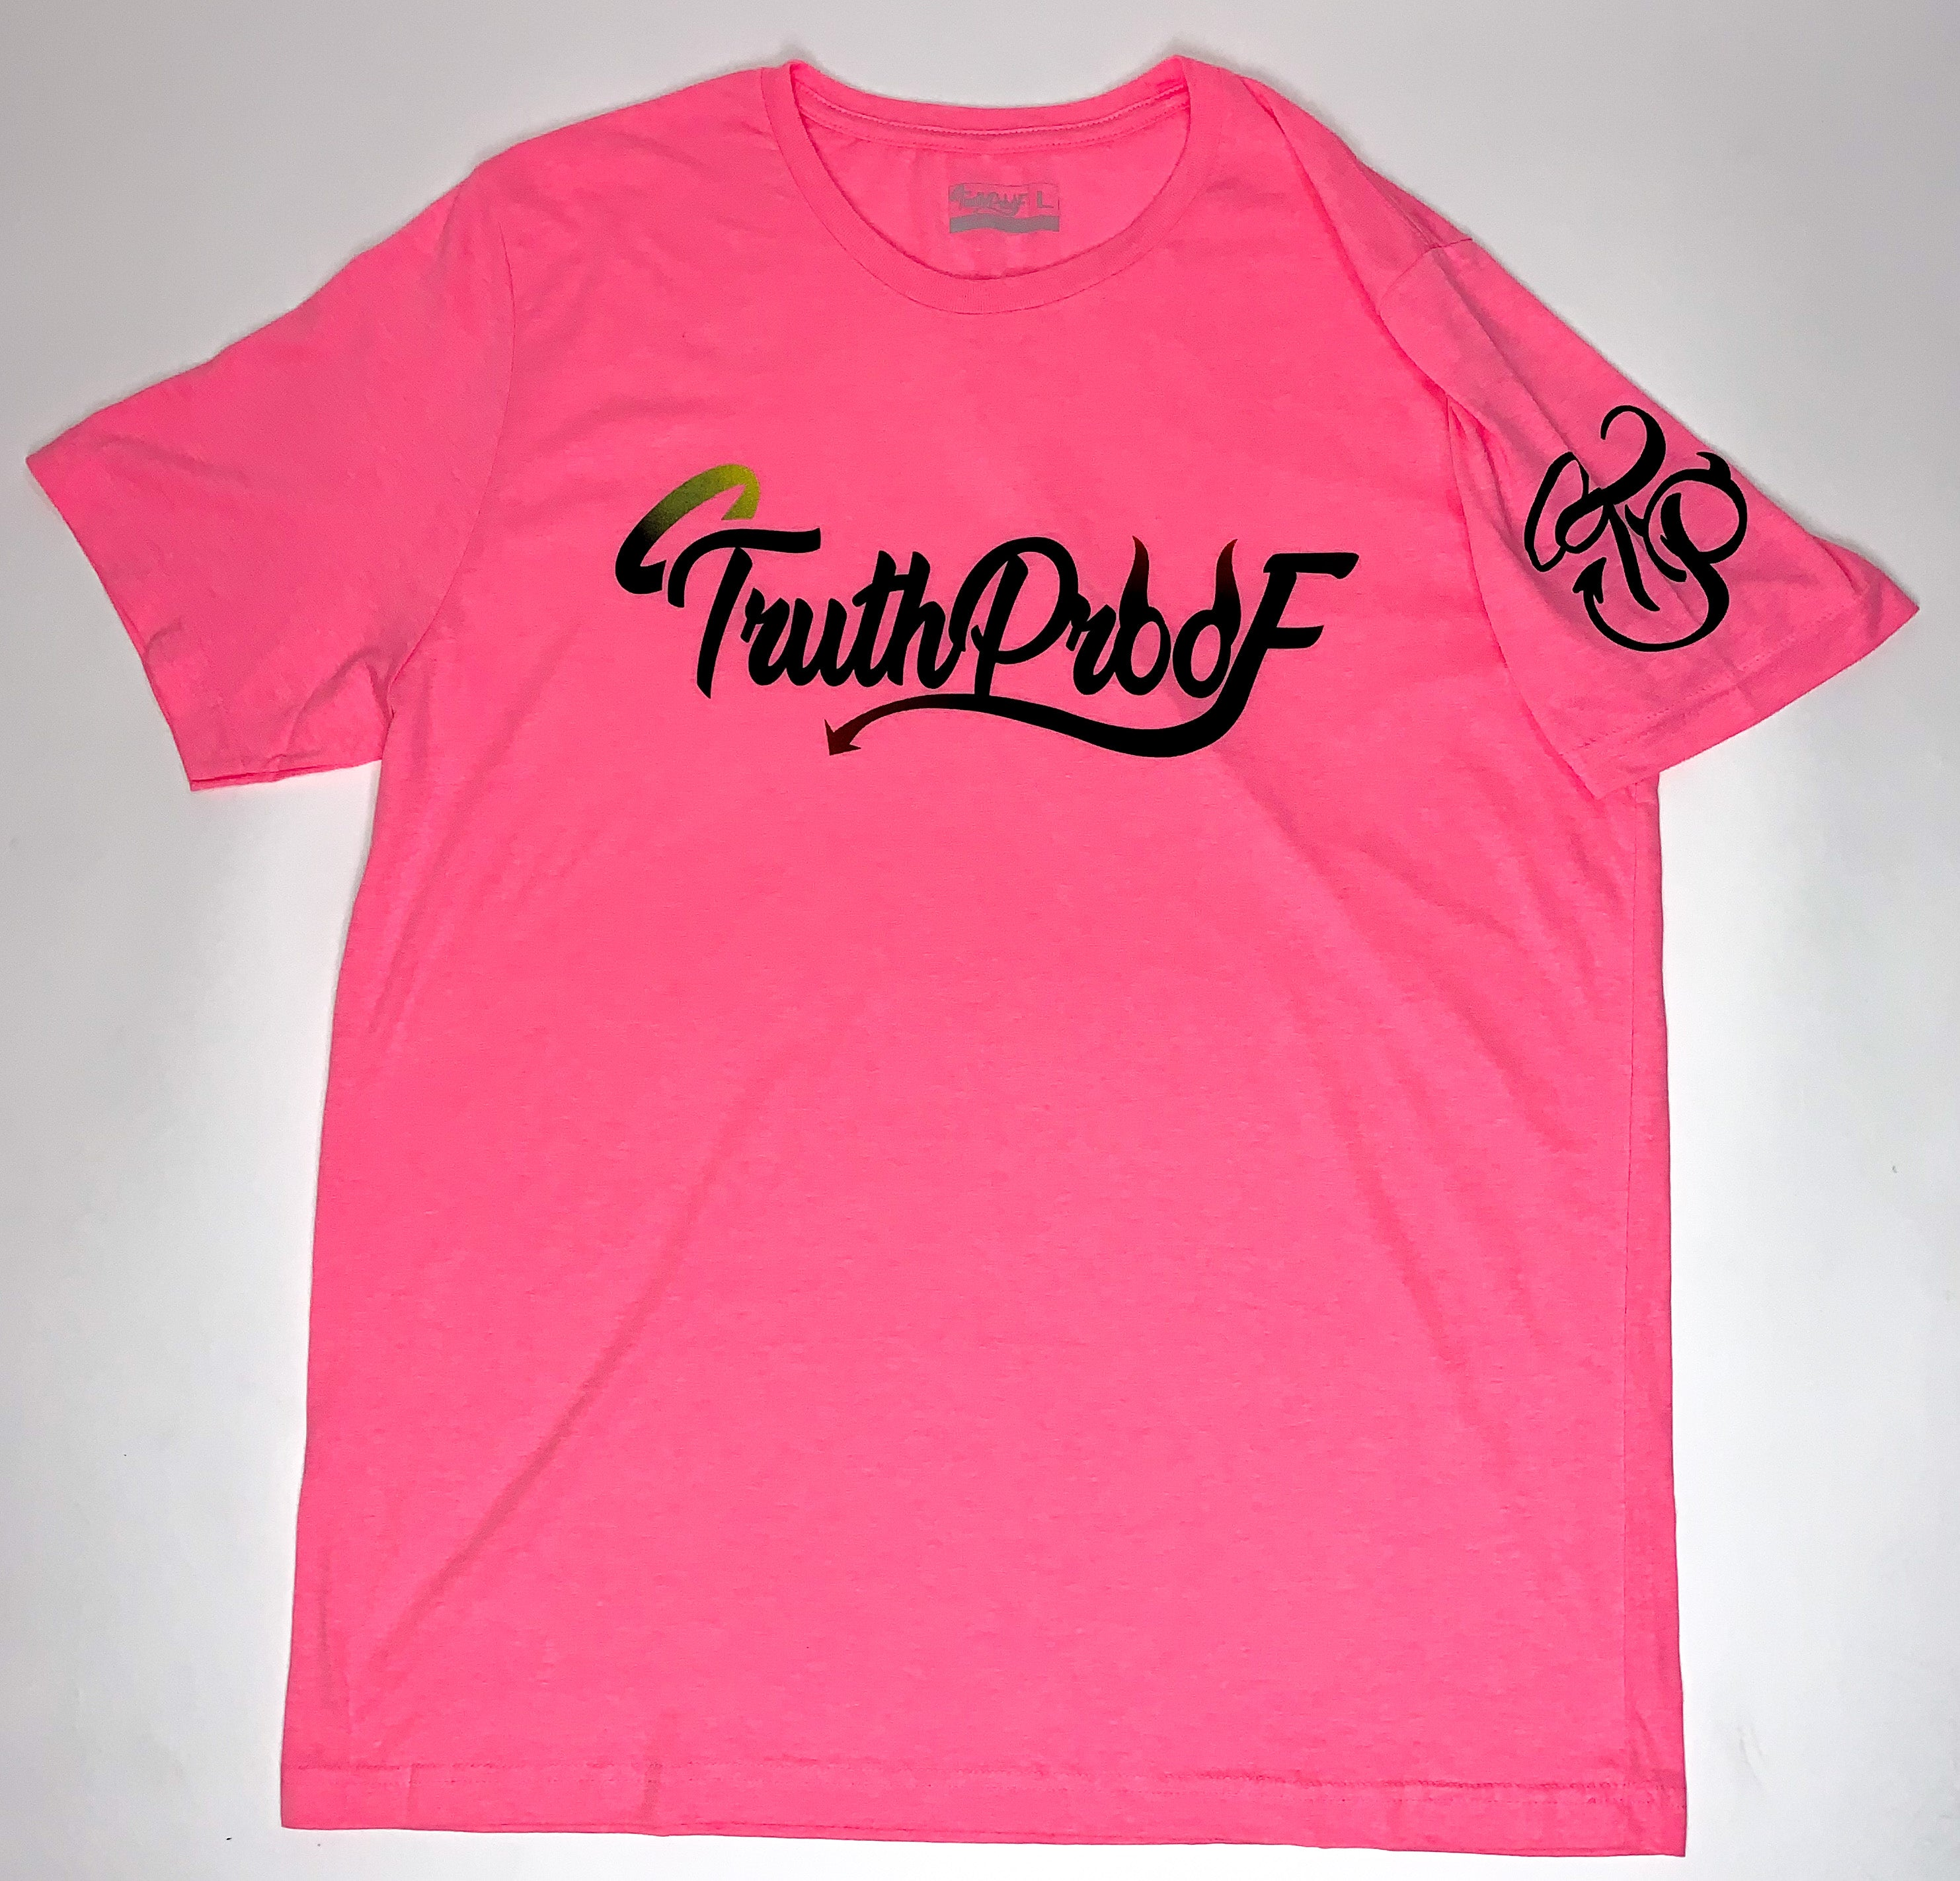 TruthProof Classic Neon Pink Unisex solid color Premium T-shirt